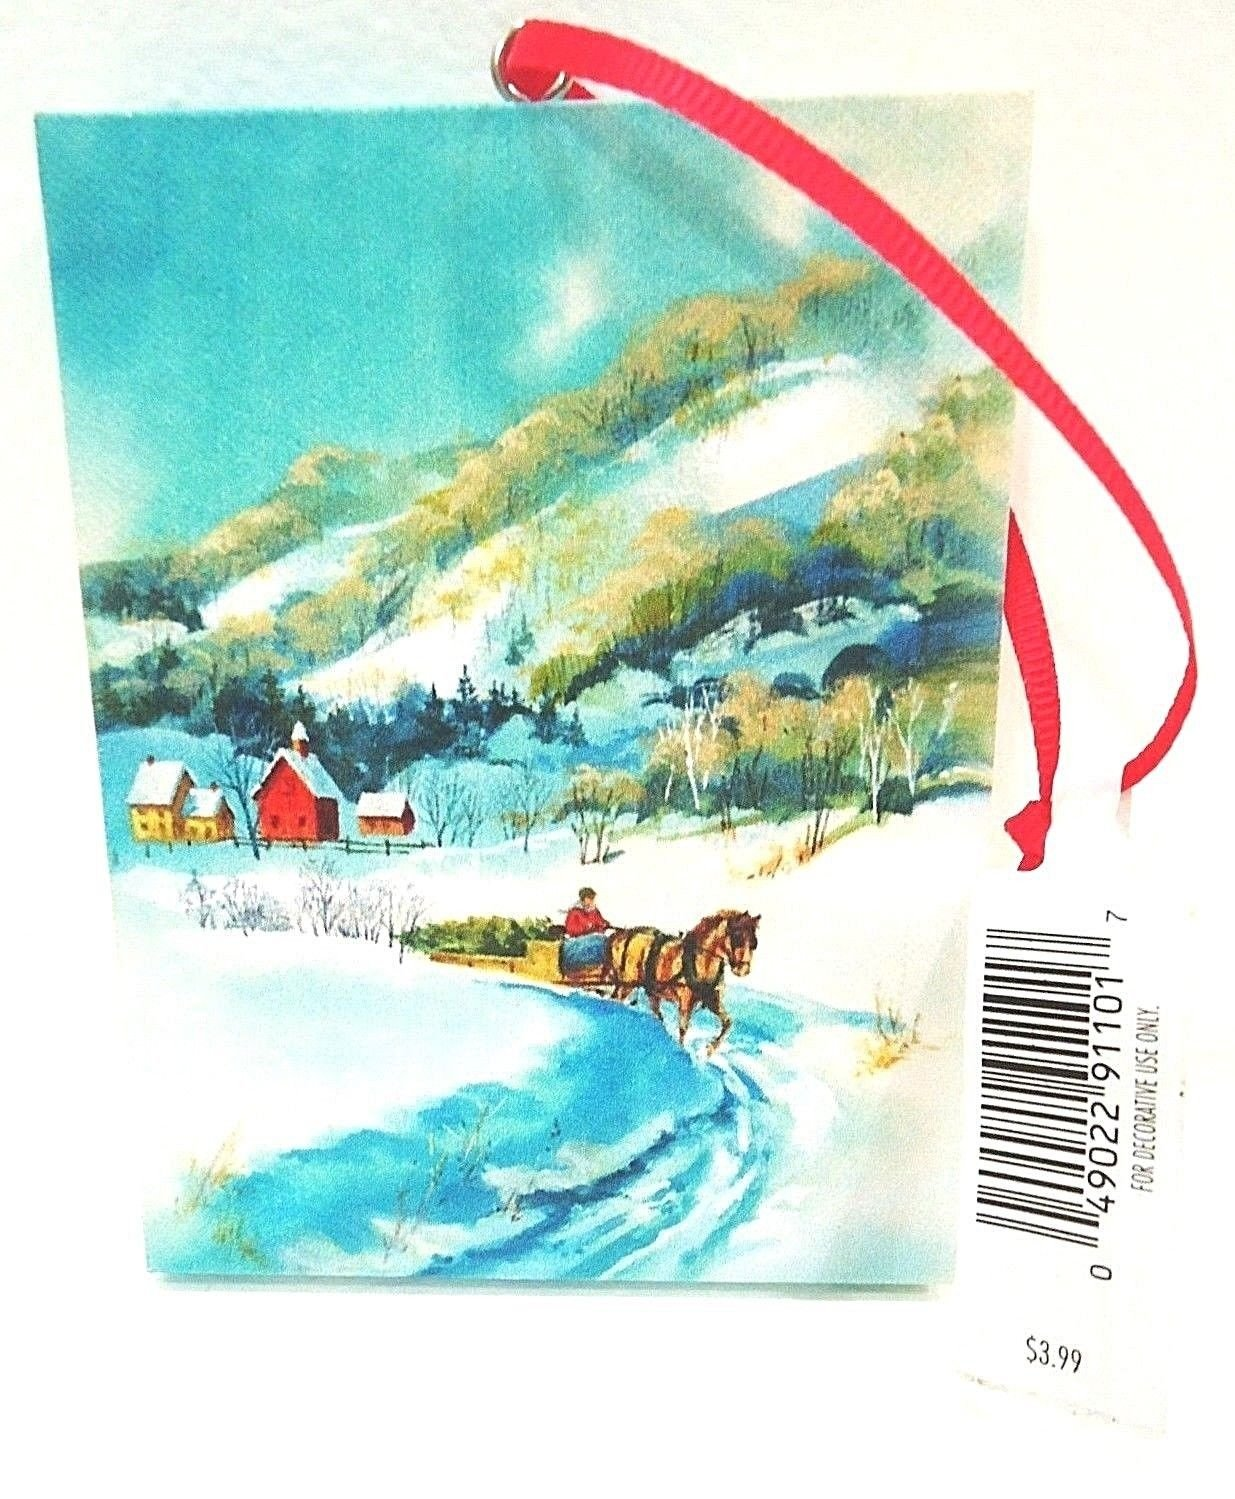 HALLMARK - CHRISTMAS - TREE - ORNAMENT - SNOW - HORSE - CANVAS - PAINTING - NEW